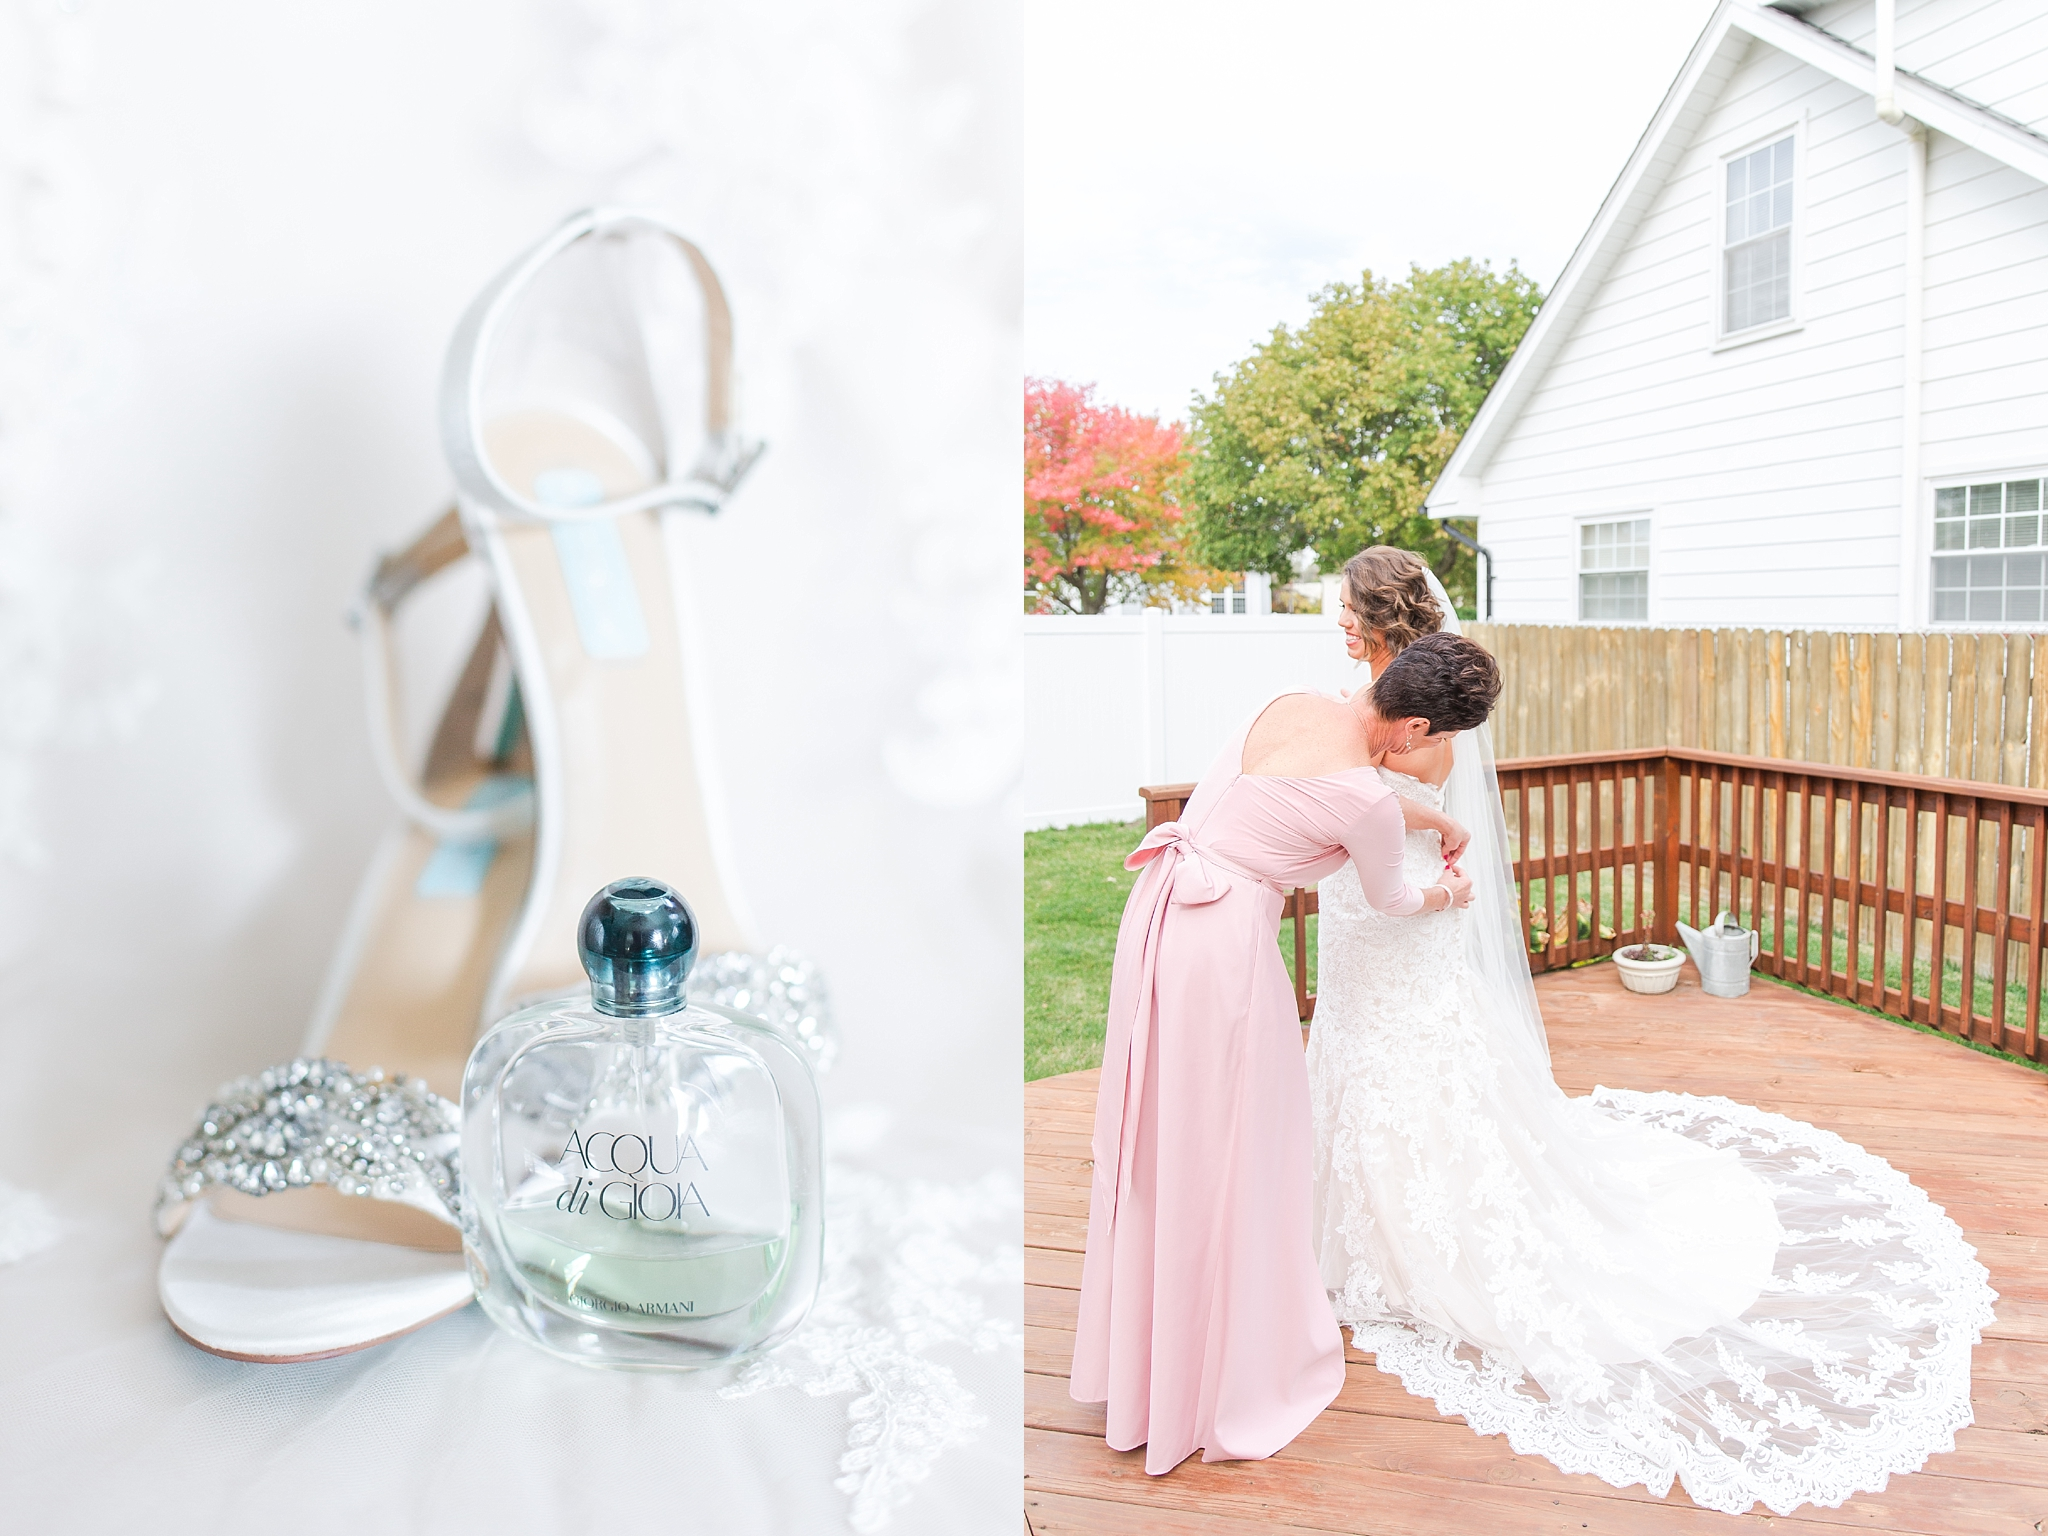 romantic-artful-candid-wedding-photos-in-detroit-lansing-ann-arbor-northern-michigan-and-chicago-by-courtney-carolyn-photography_0082.jpg